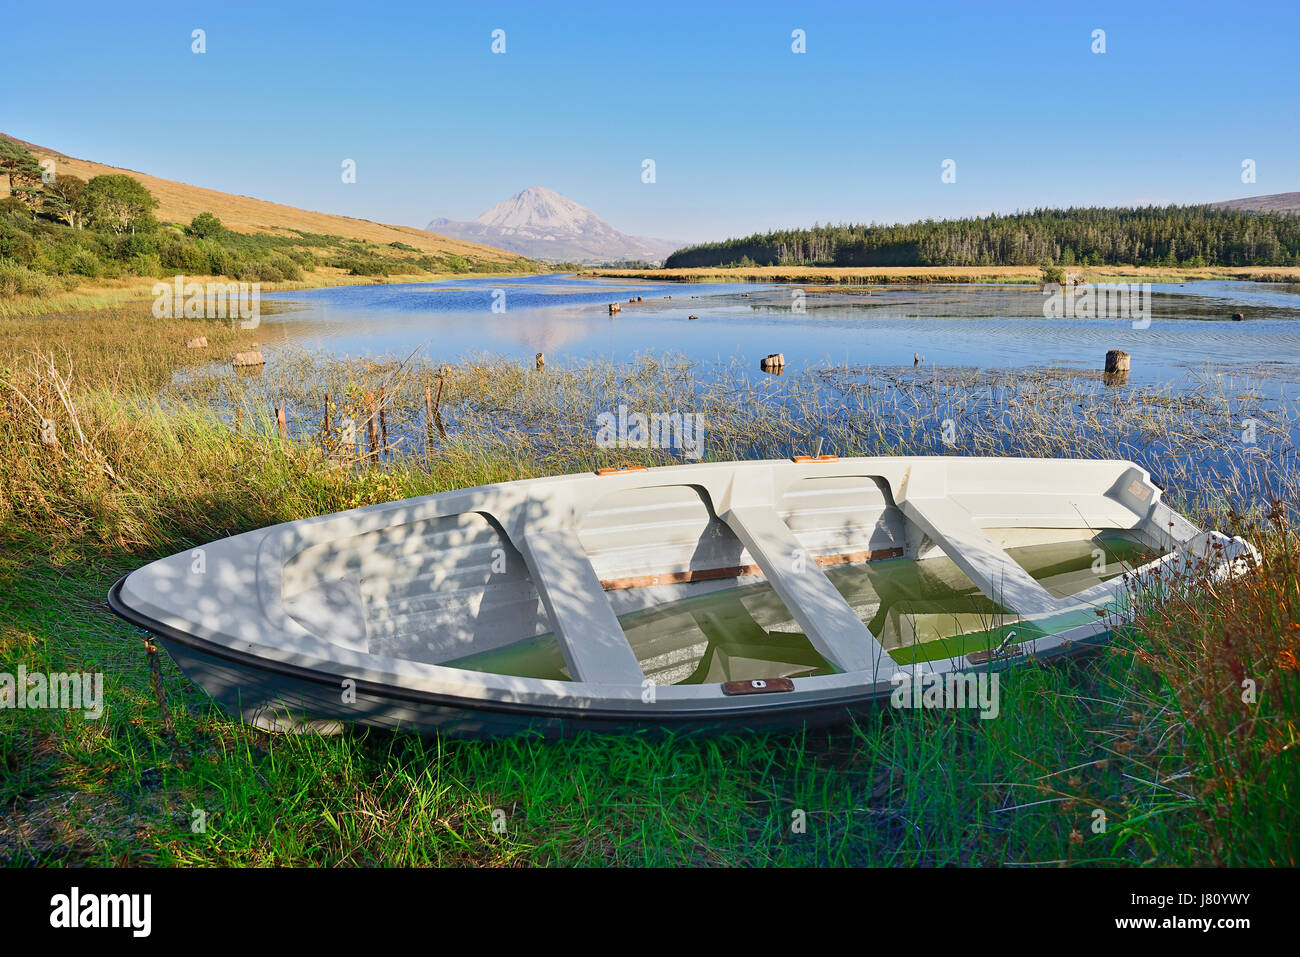 Ireland,County Donegal, Clady River with Mount Errigal in the distance and a rowing boat in the foreground. - Stock Image